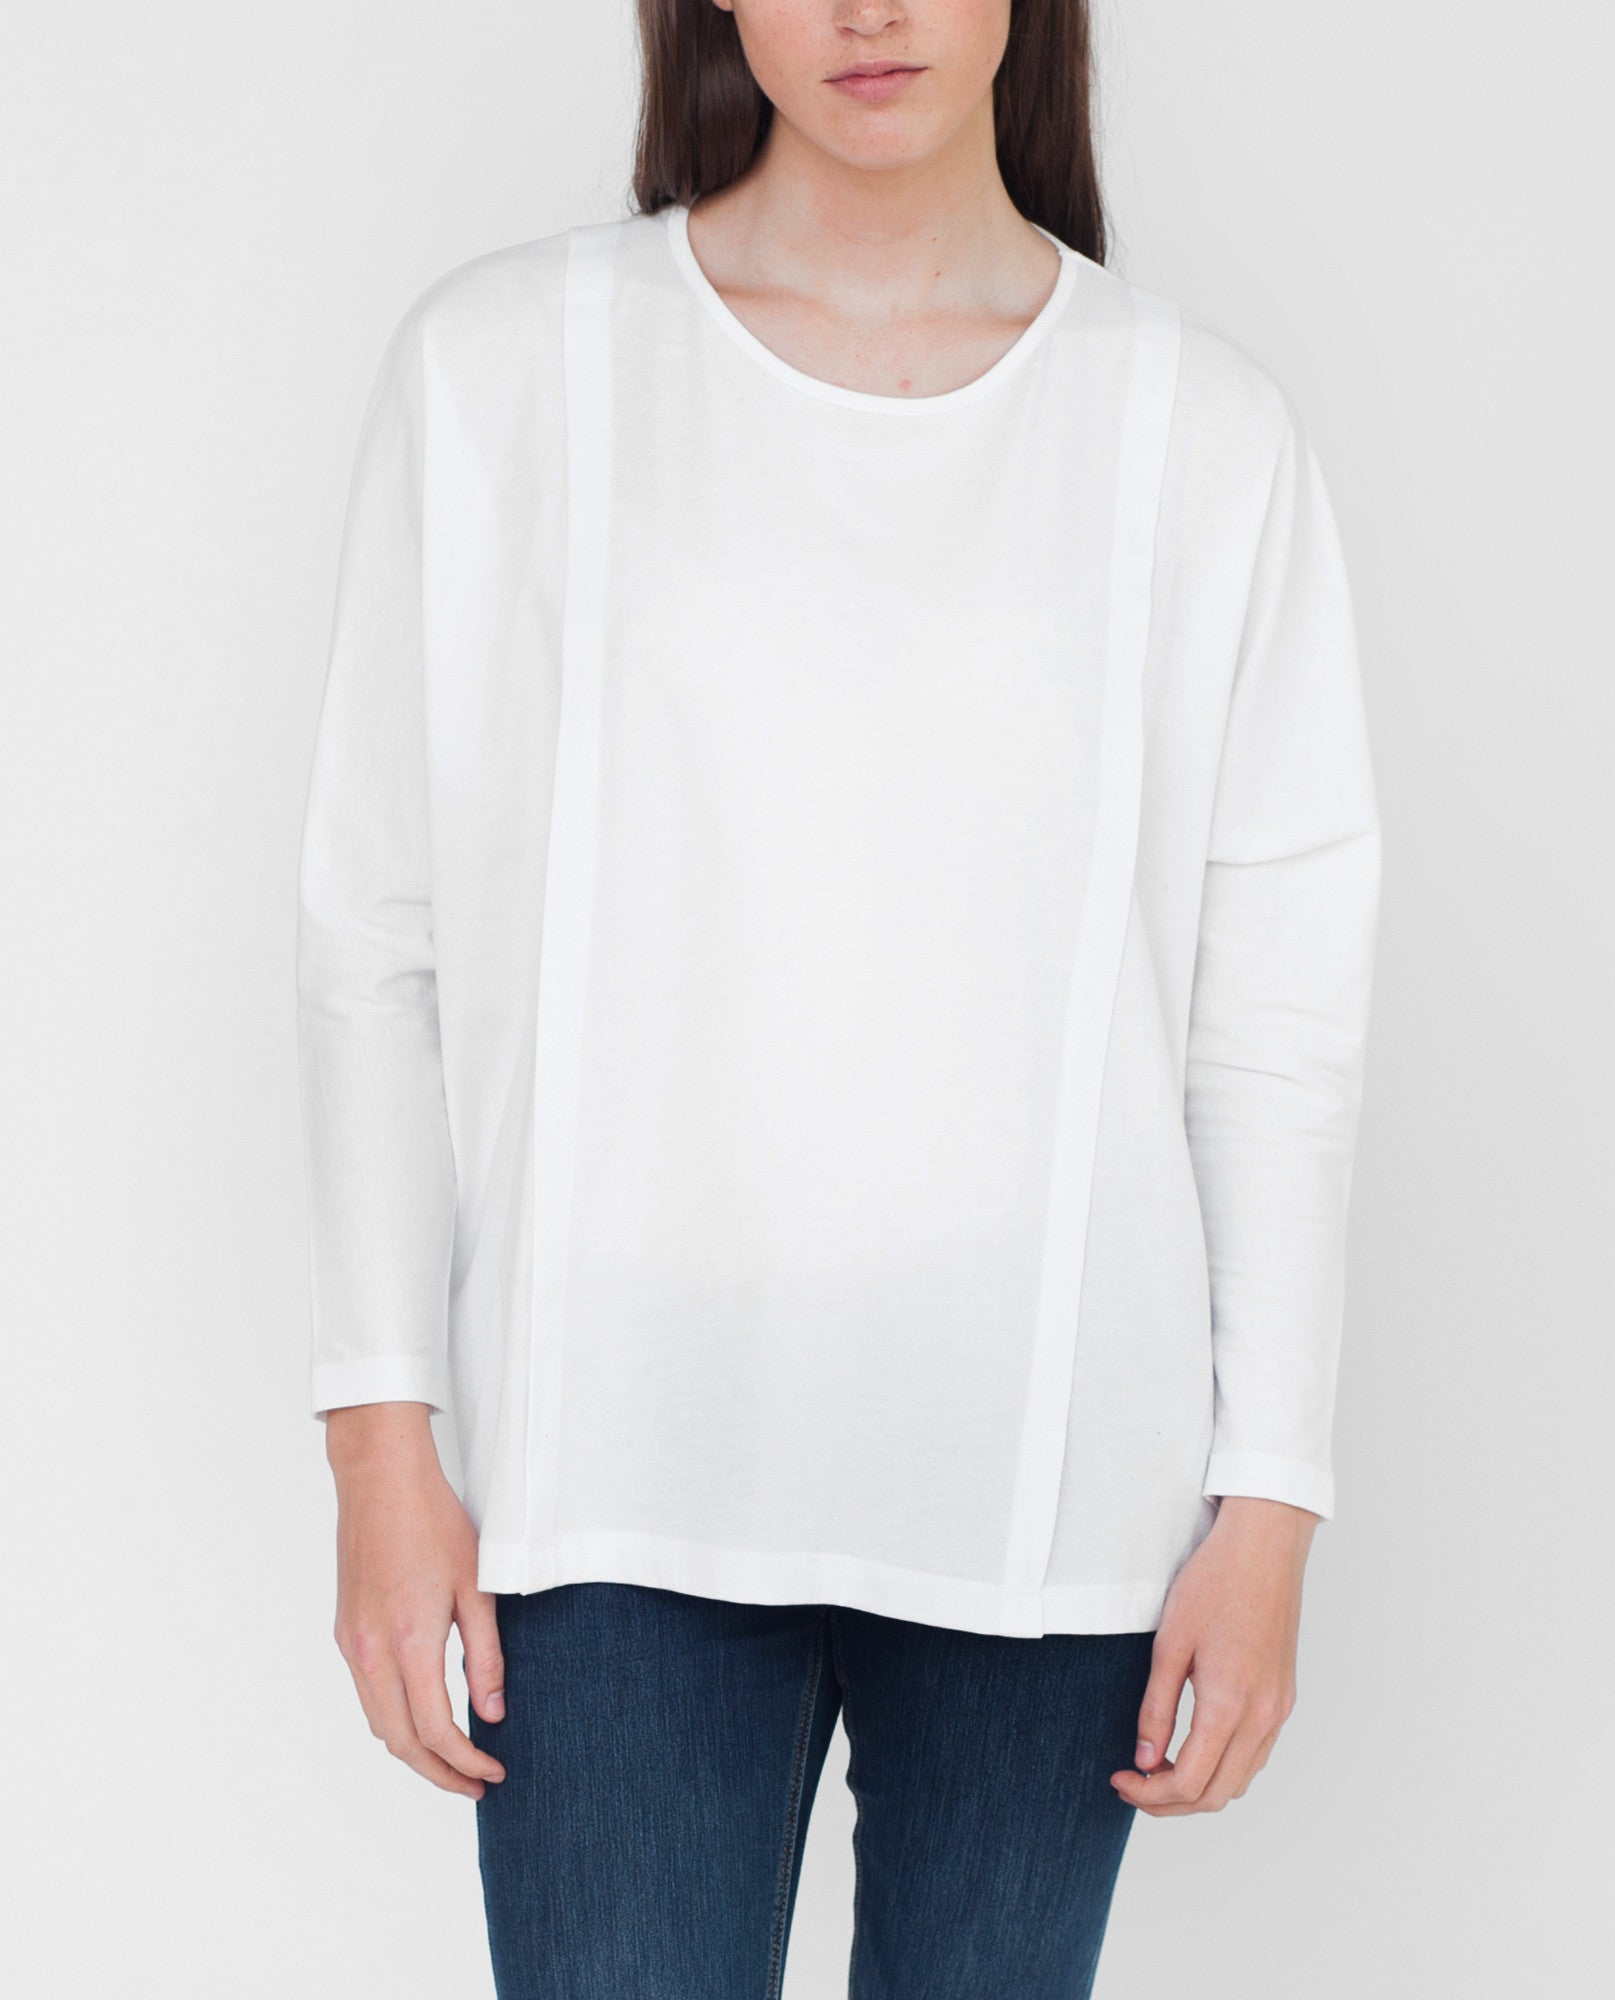 IMOGEN Organic Cotton Top In White from Beaumont Organic